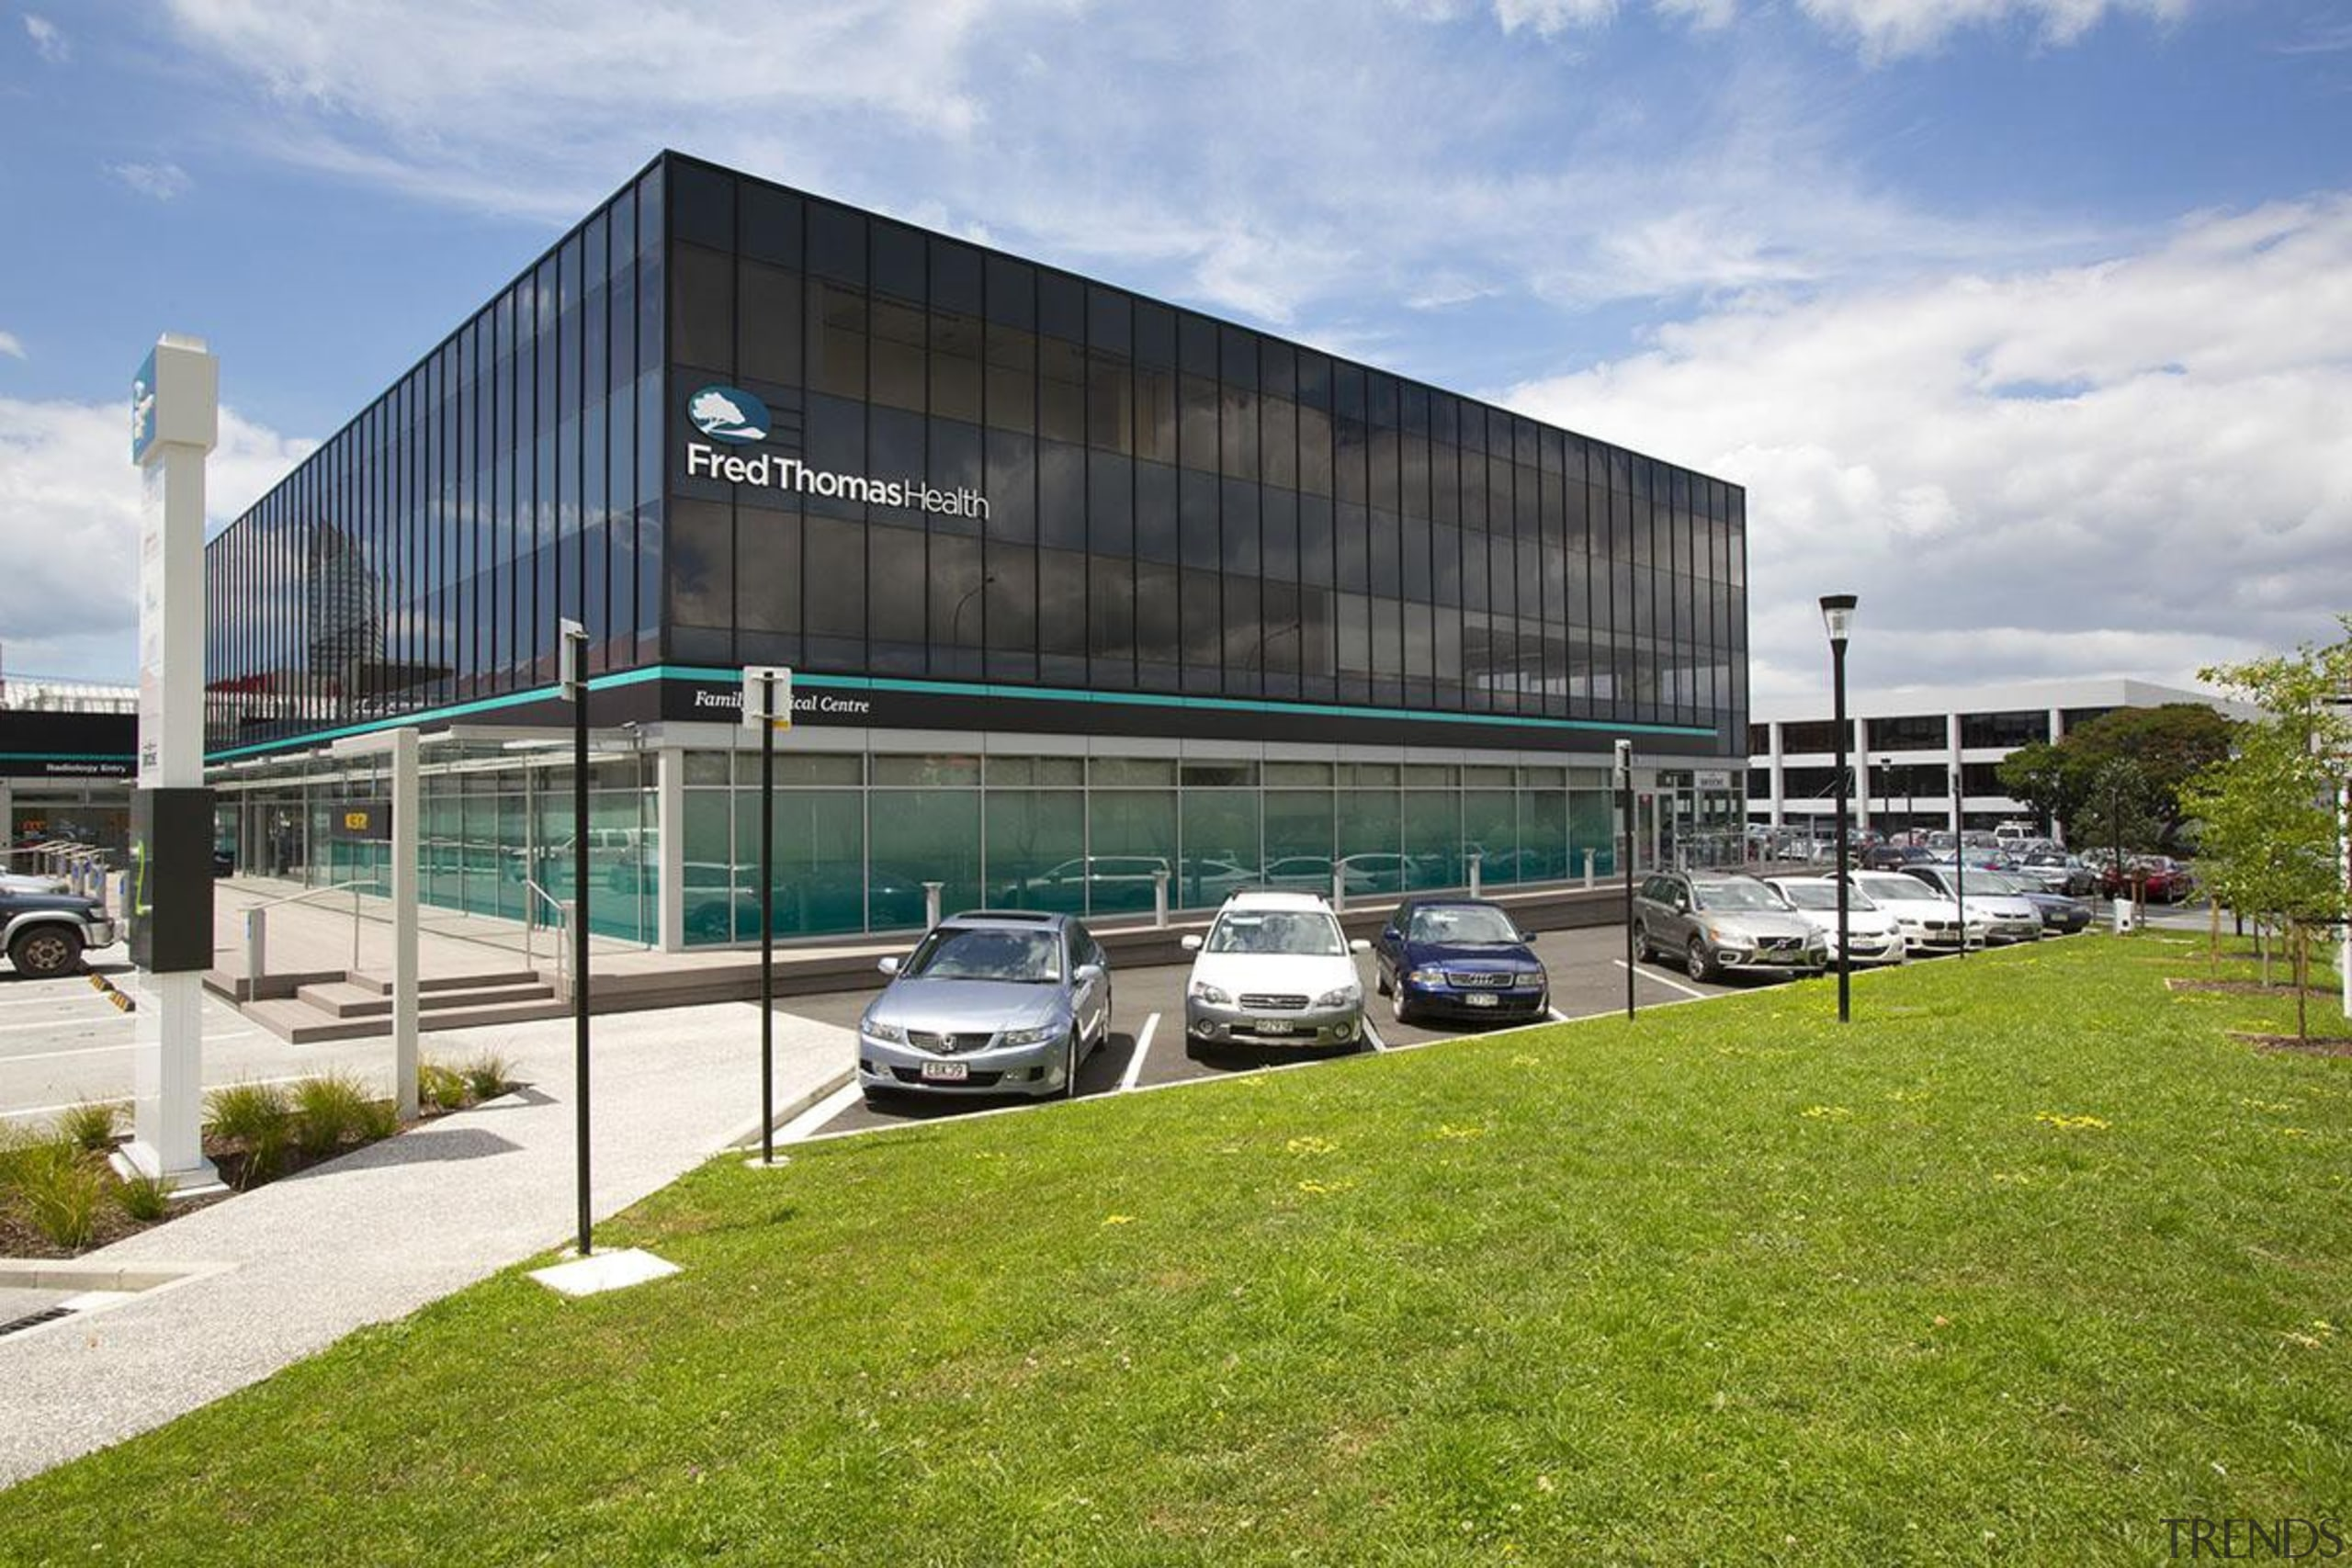 MERIT WINNER2 and 4 Fred Thomas Drive (4 architecture, building, corporate headquarters, facade, property, real estate, gray